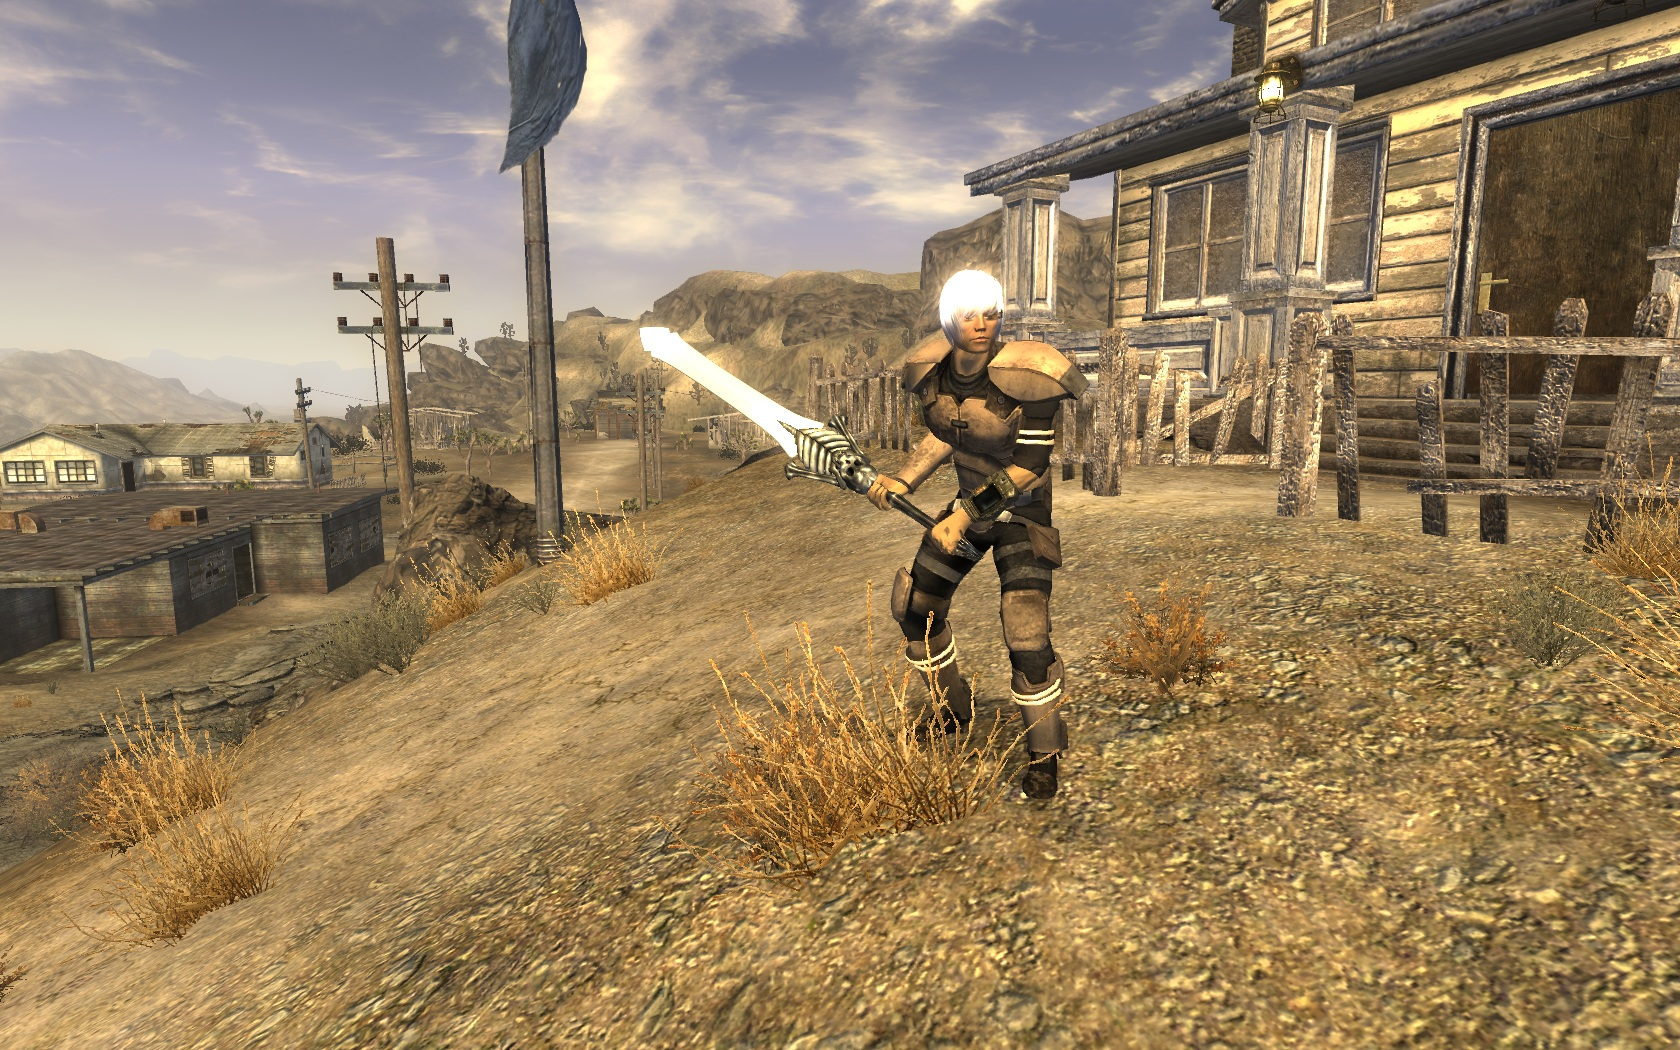 WME - Weapon Mod Expansion at Fallout New Vegas - mods and